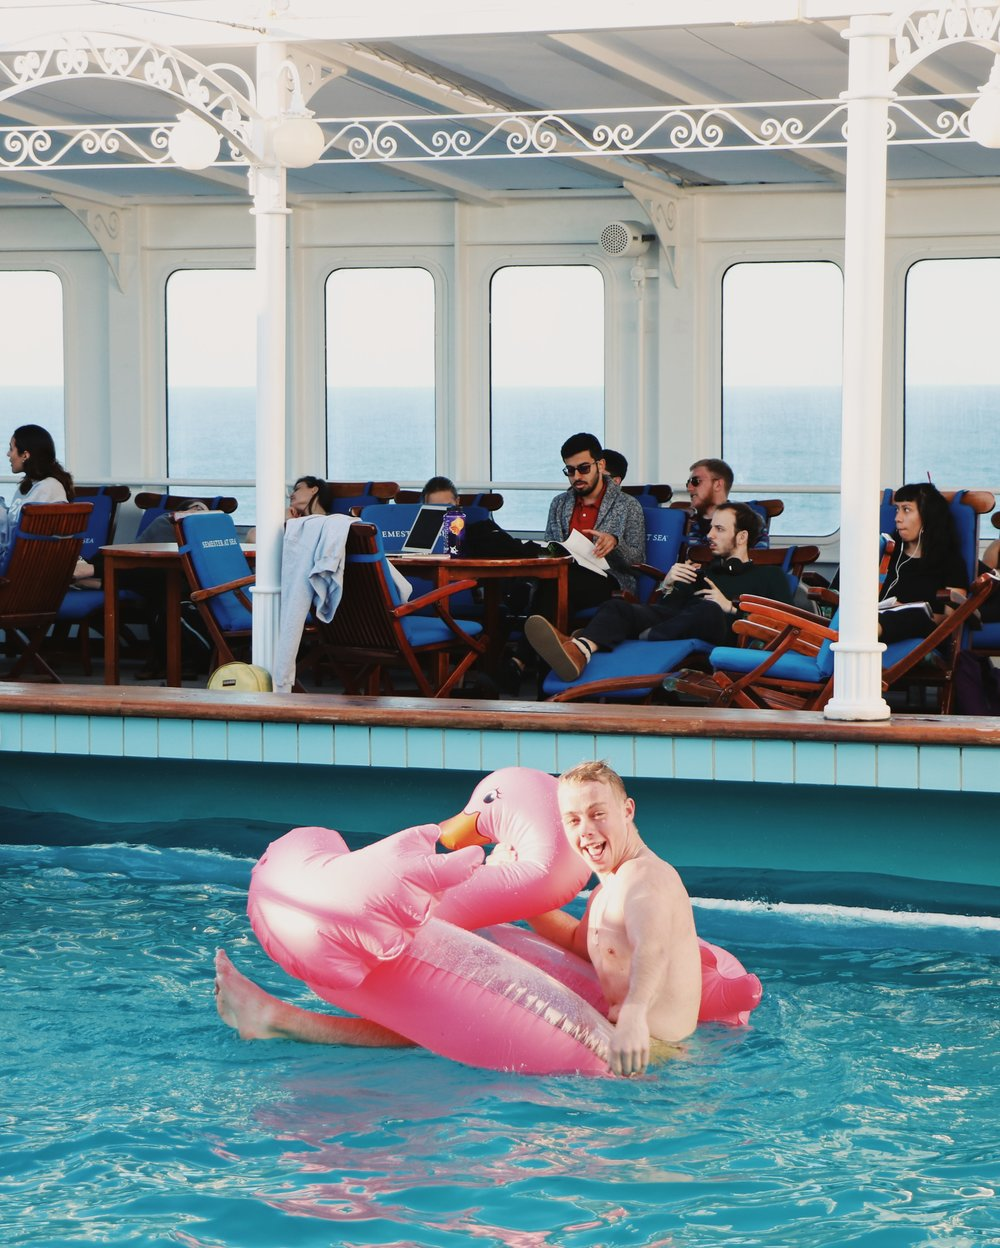 SASer Jack Wold relaxes in a flamingo floaty in the pool. On warm, sunny days, nearly every student can be found tanning on the pool deck in between classes.